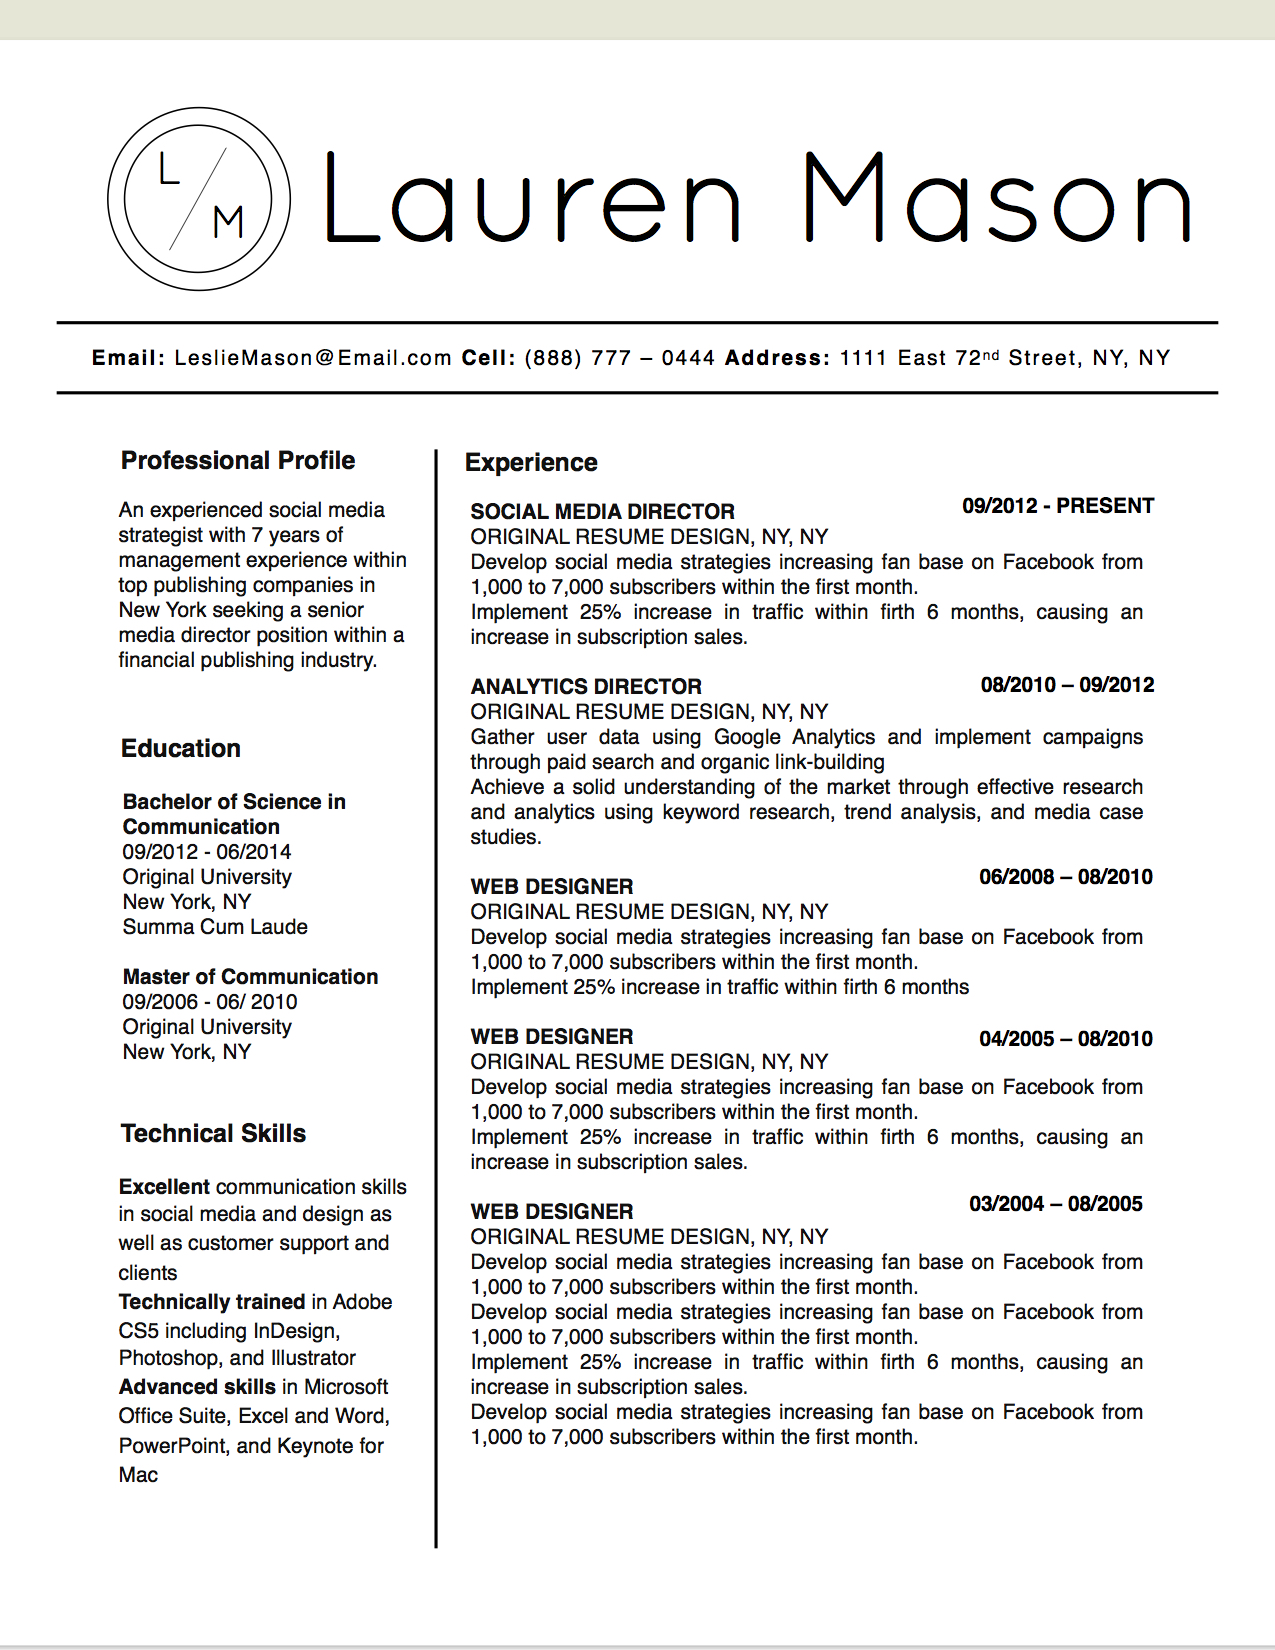 Lauren Mason Resume Template - Stand Out Shop